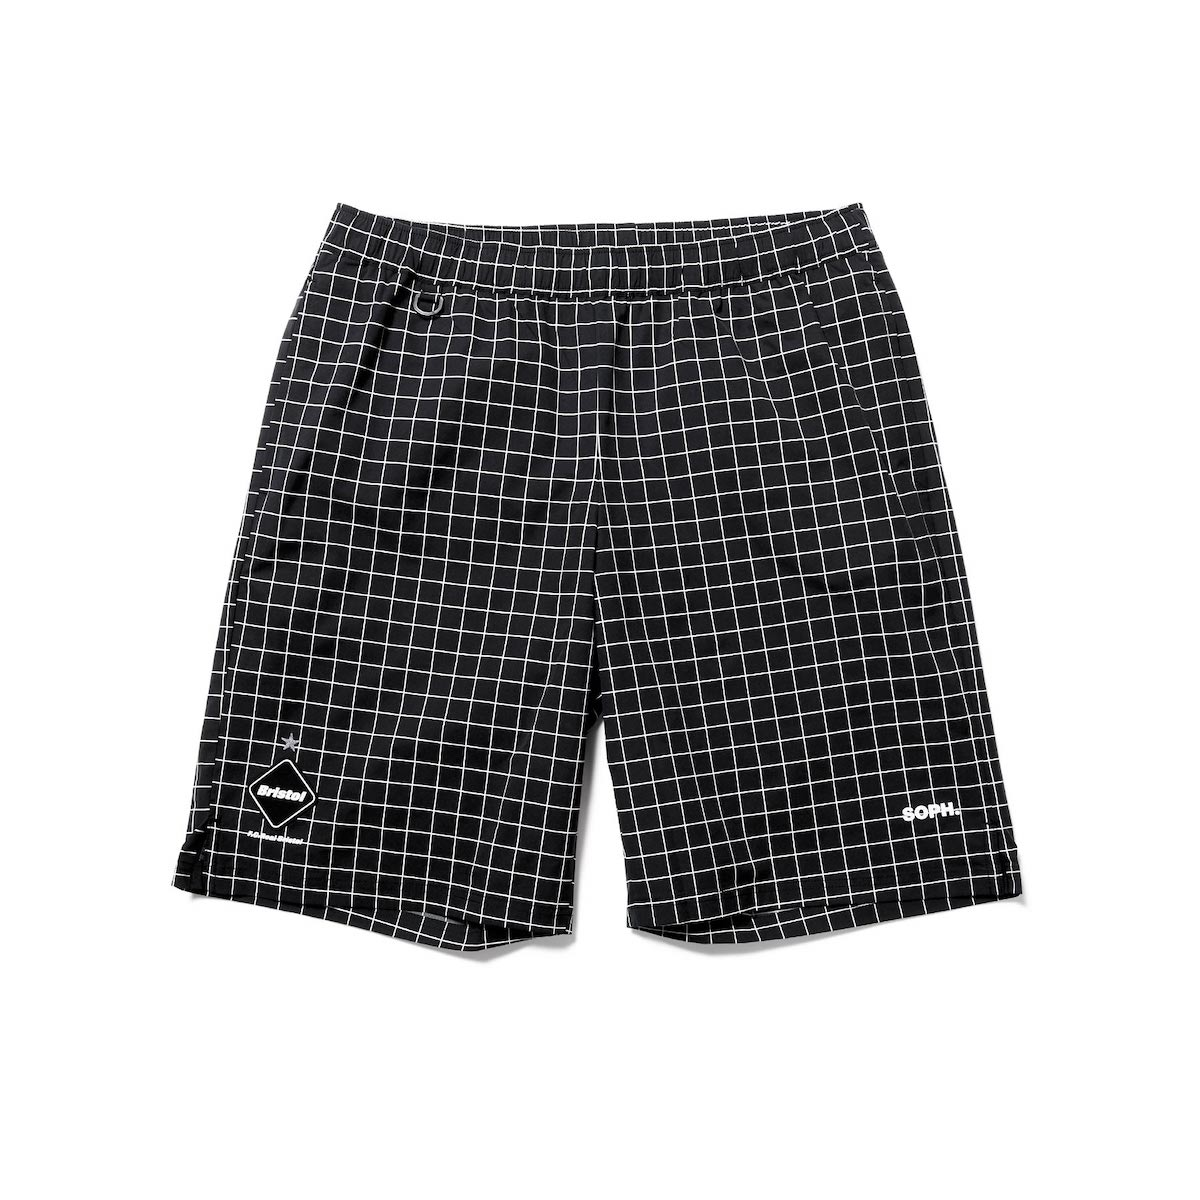 F.C.Real Bristol / PRACTICE SHORTS (black)